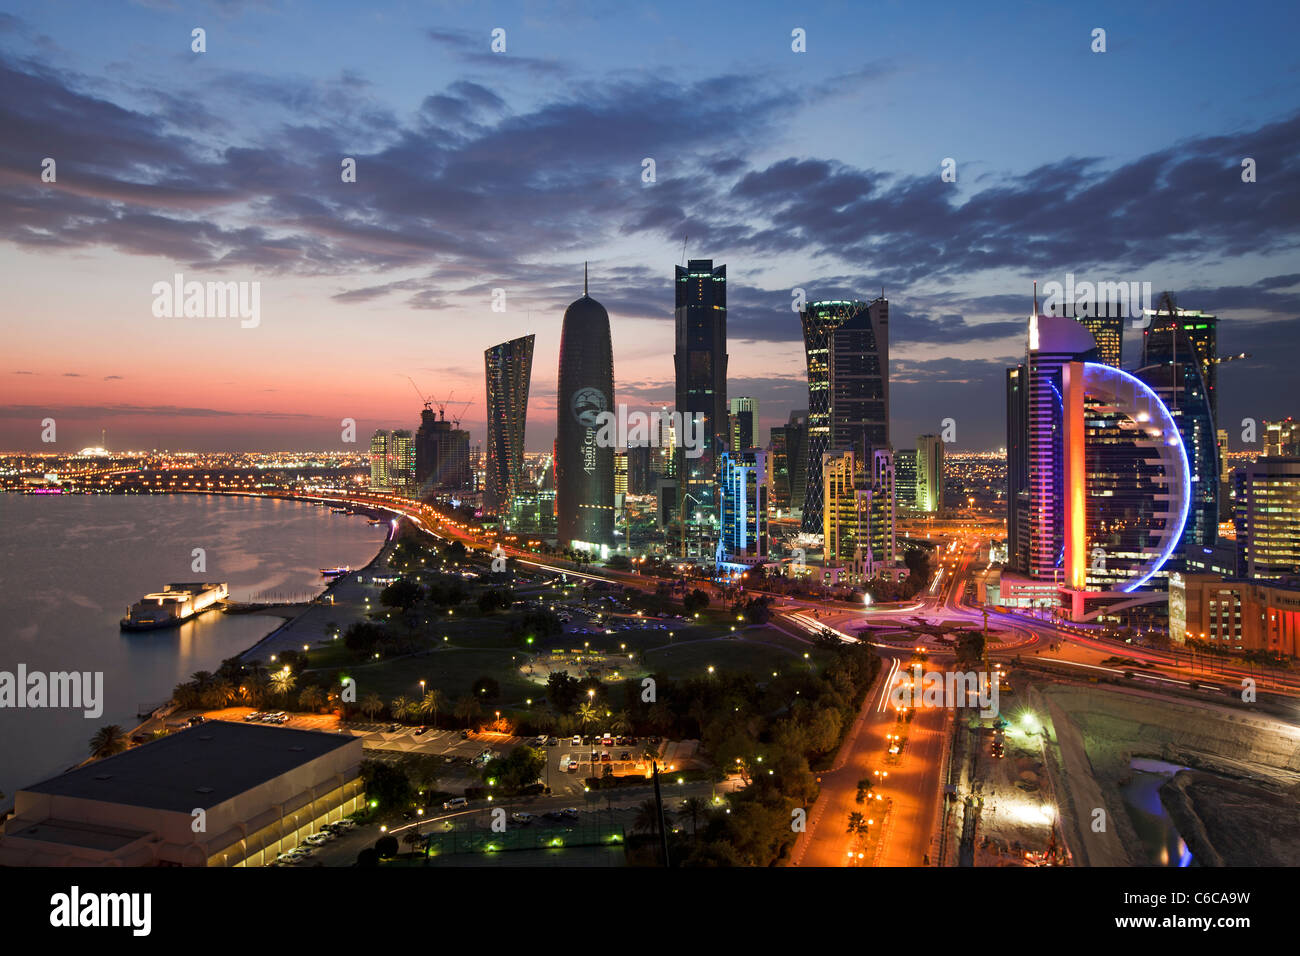 Qatar, Middle East, Arabian Peninsula, Doha, new skyline of the West Bay central financial district of Doha - Stock Image